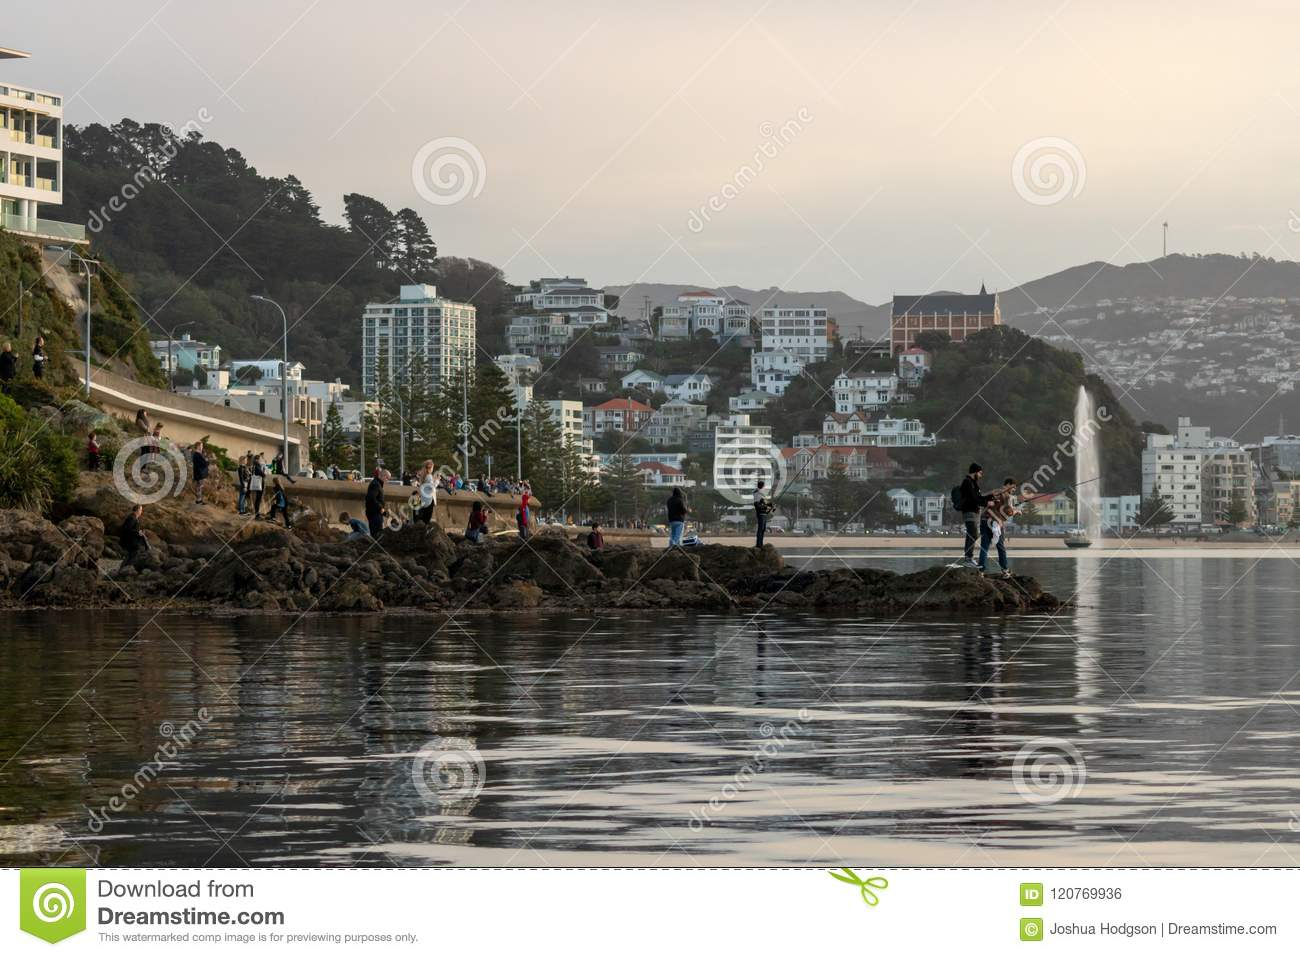 Le folle si riuniscono a Shoreline per osservare la balena, Wellington New Zealand